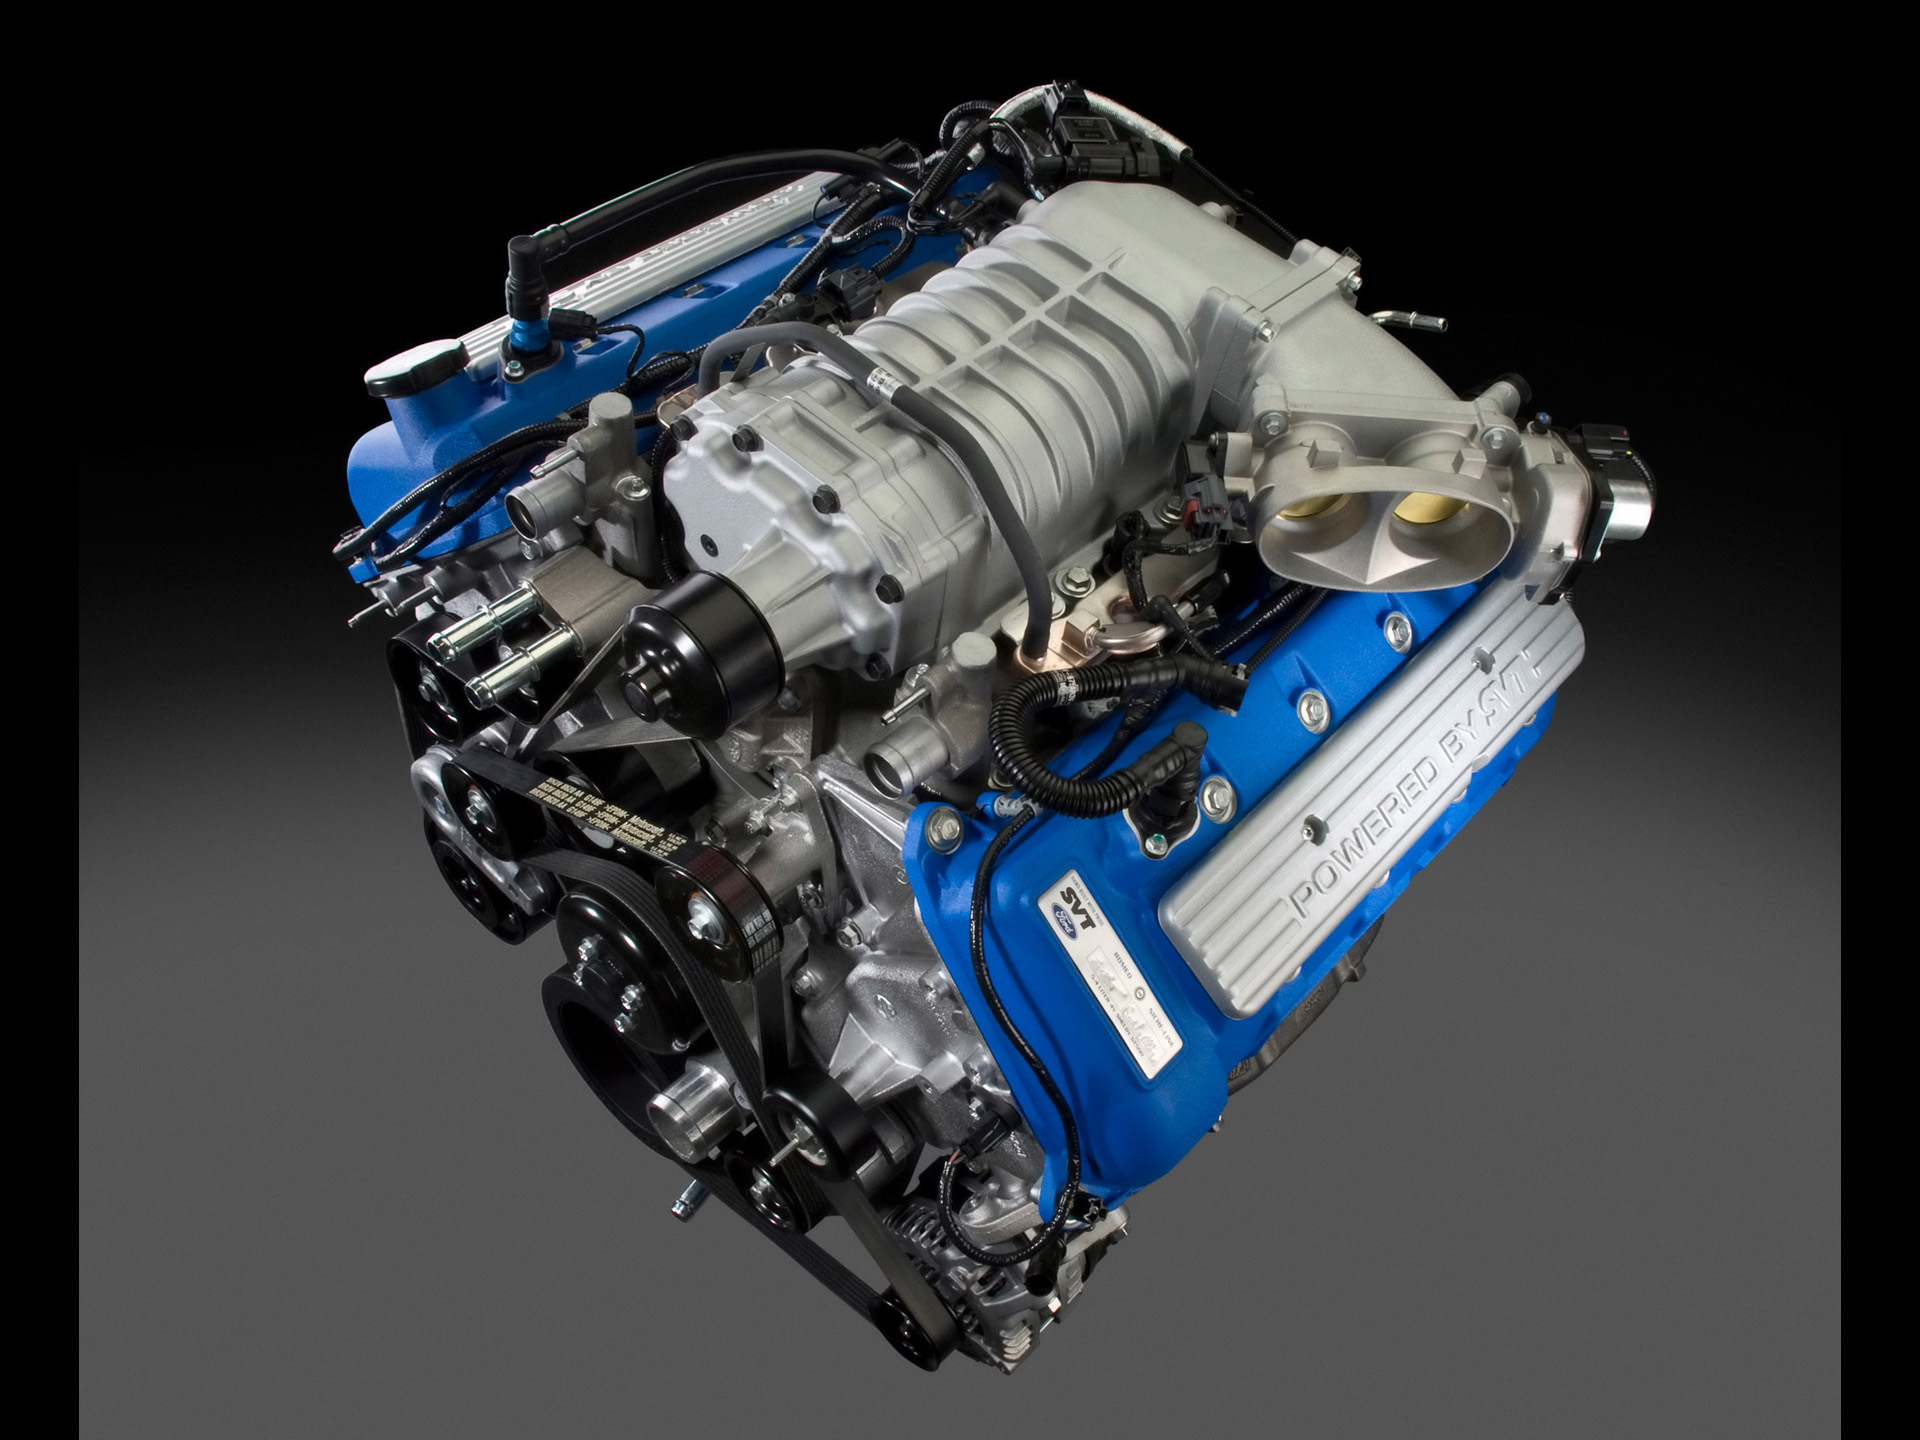 Ford Shelby GT500 engine #3